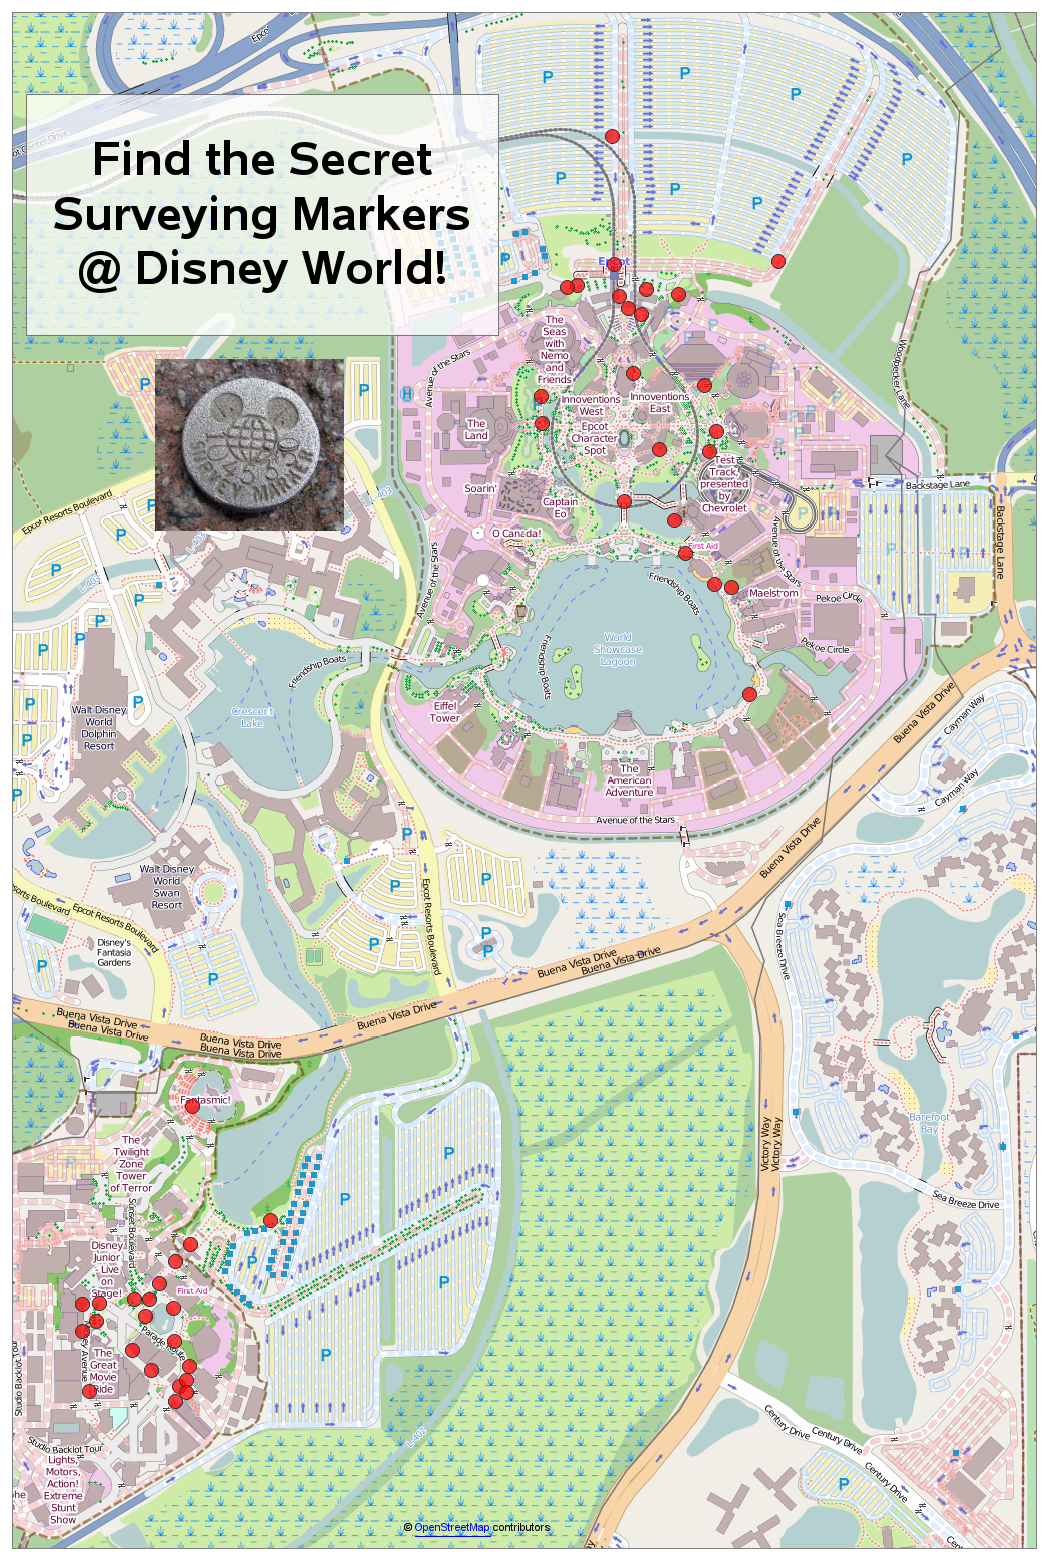 Something for geeks and nerds to do at Disney World! - SAS Learning Post